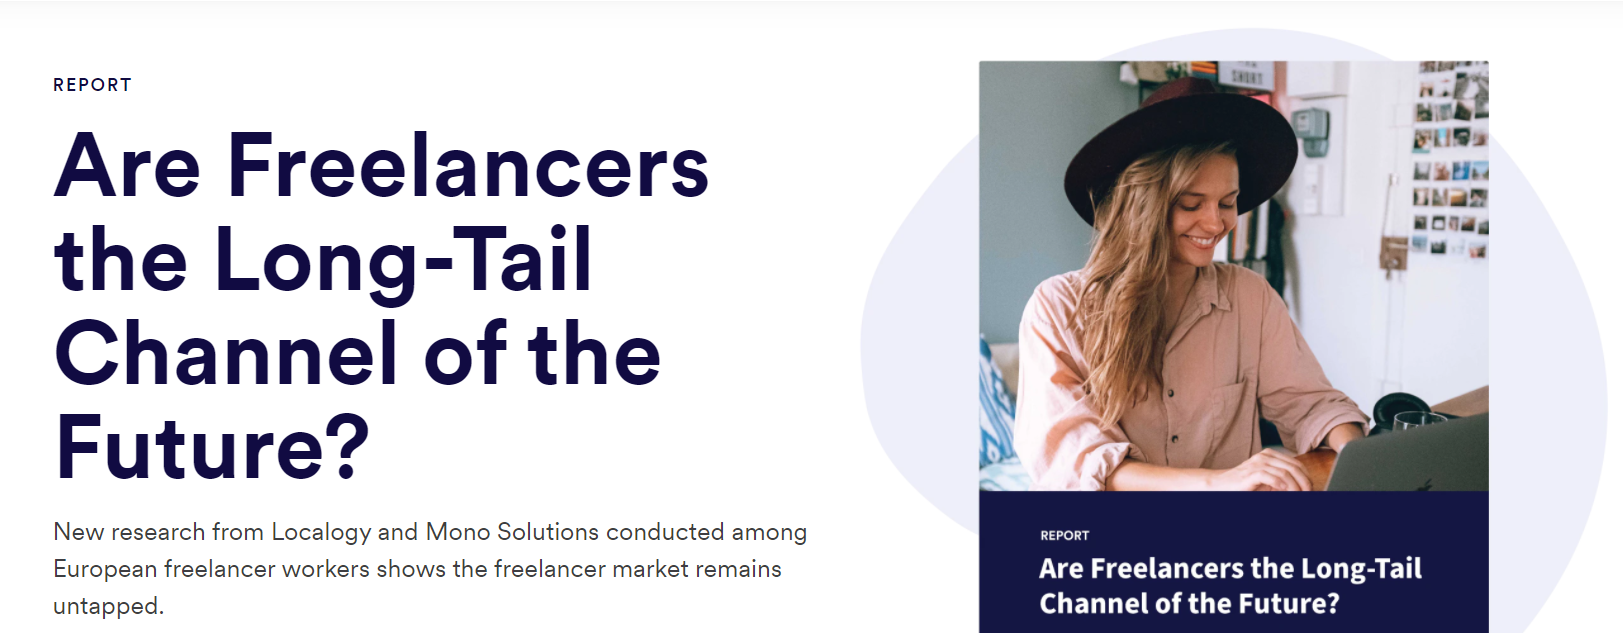 Are Freelancers the Long-Tail Channel of the Future